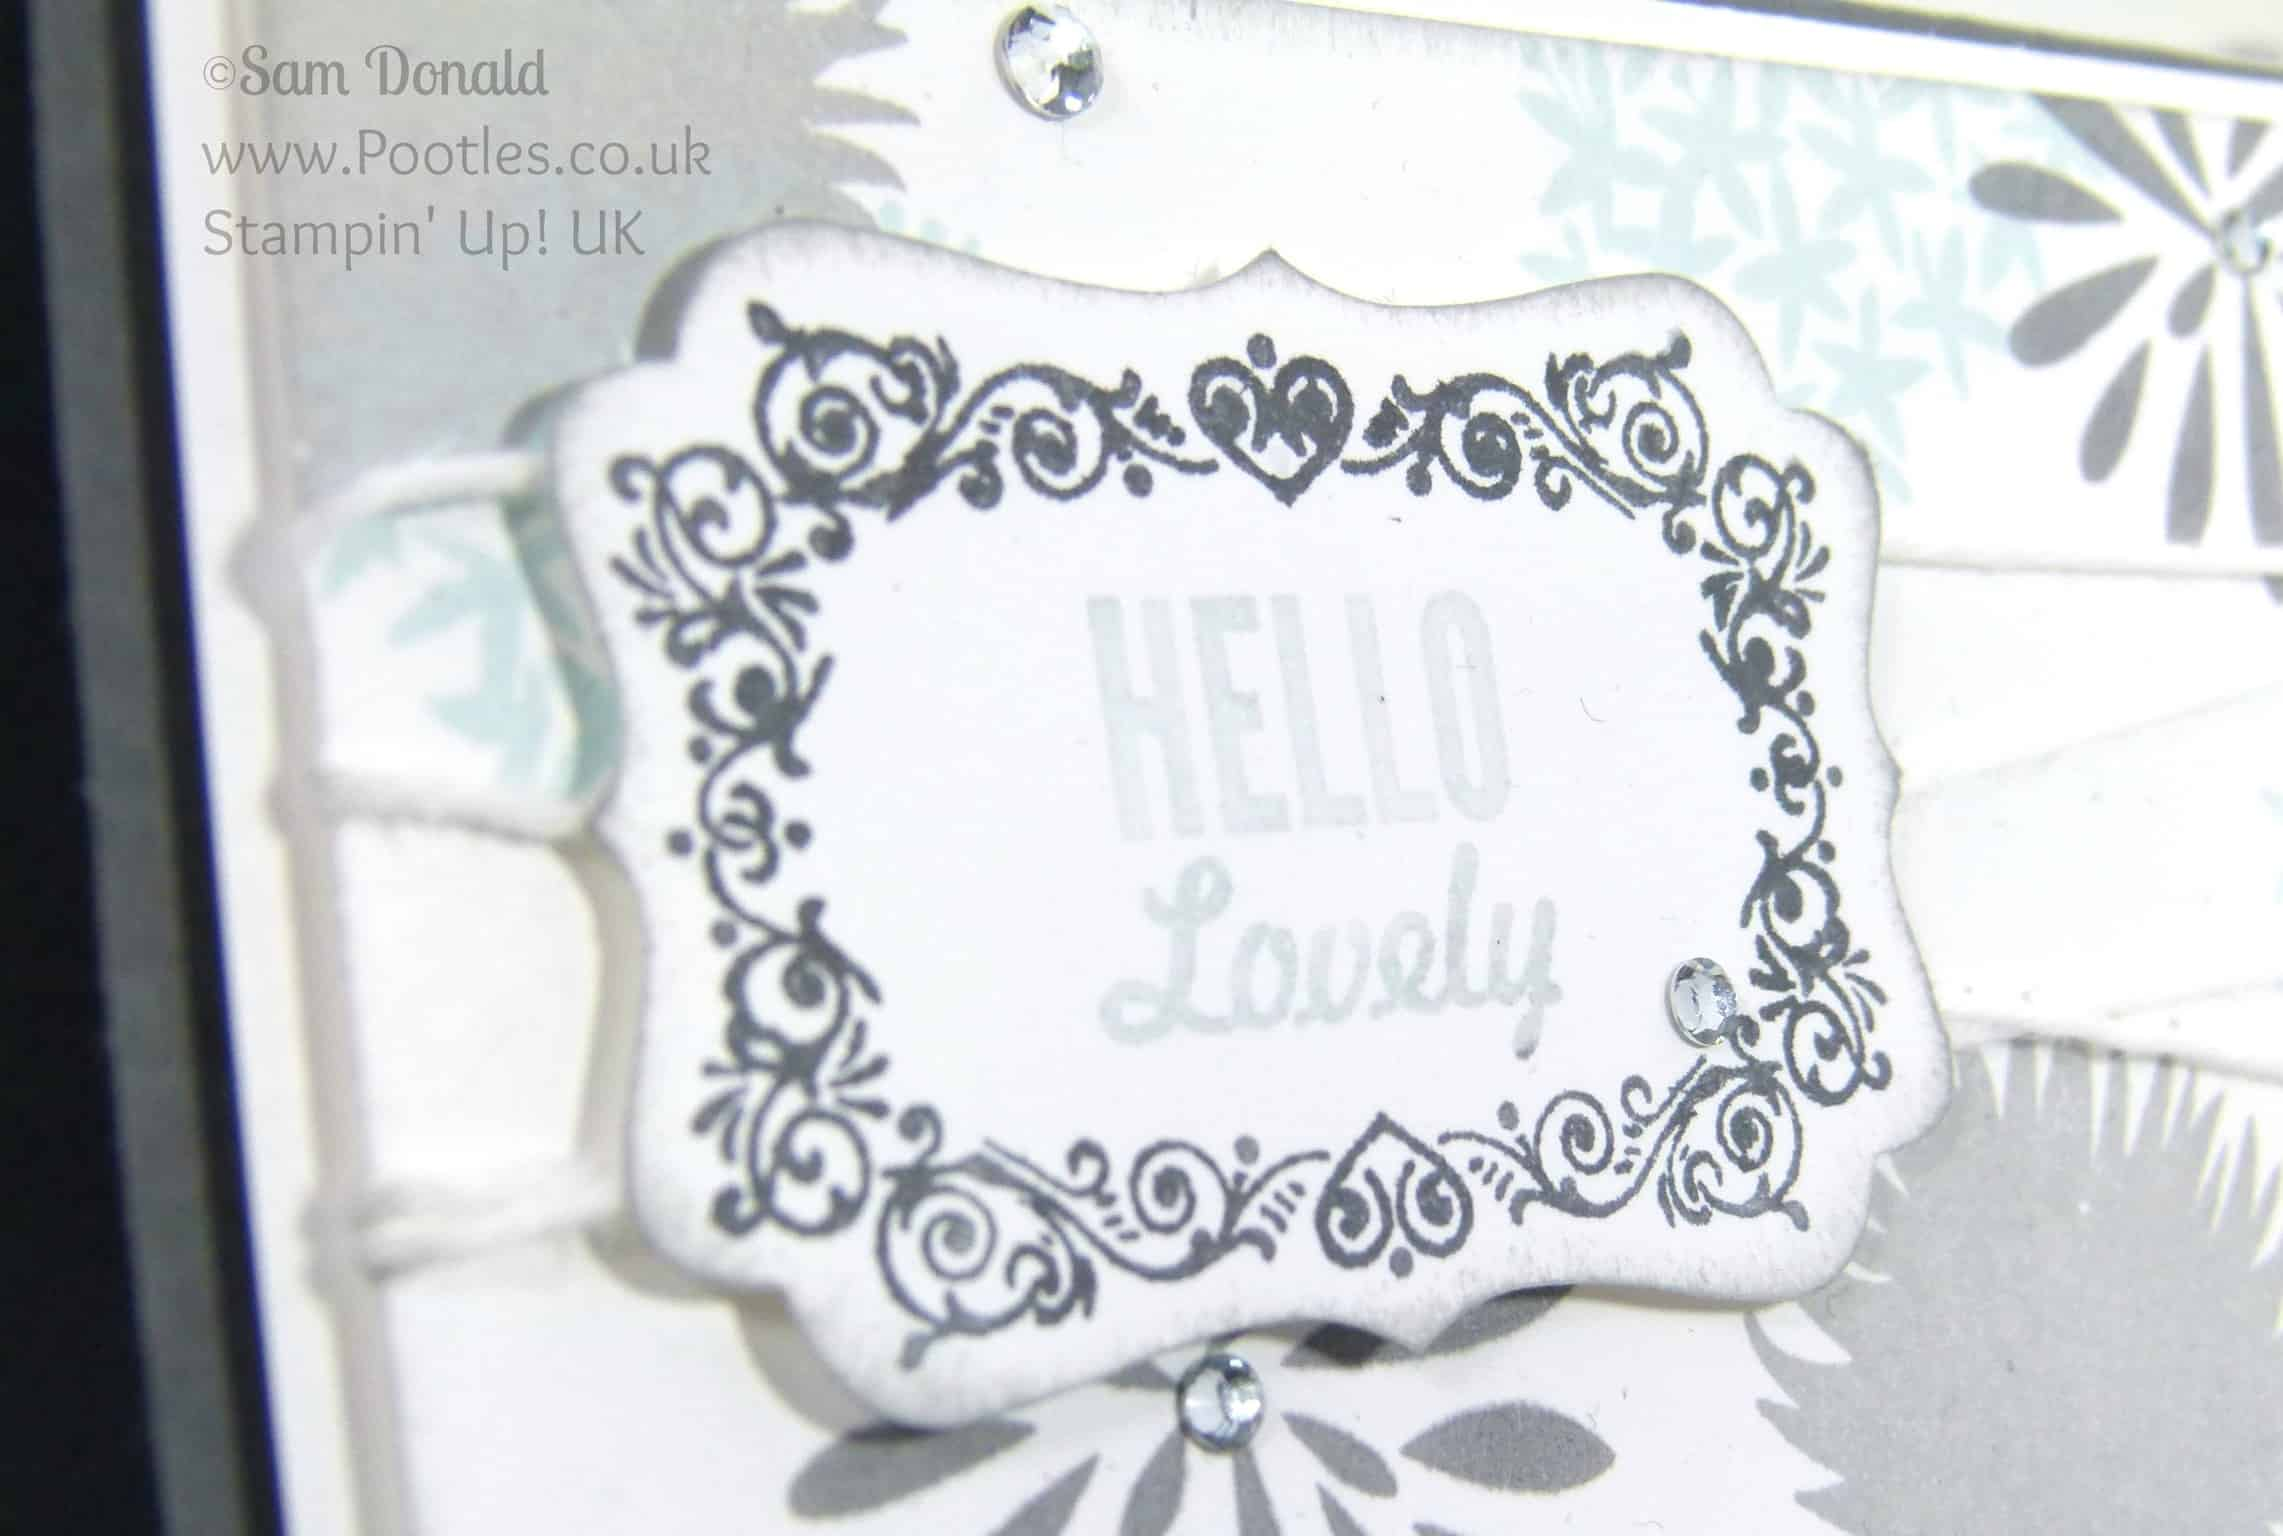 POOTLES Stampin up Uk Simple Stems. Soft and Gentle Card Hello Lovely Marker Detail